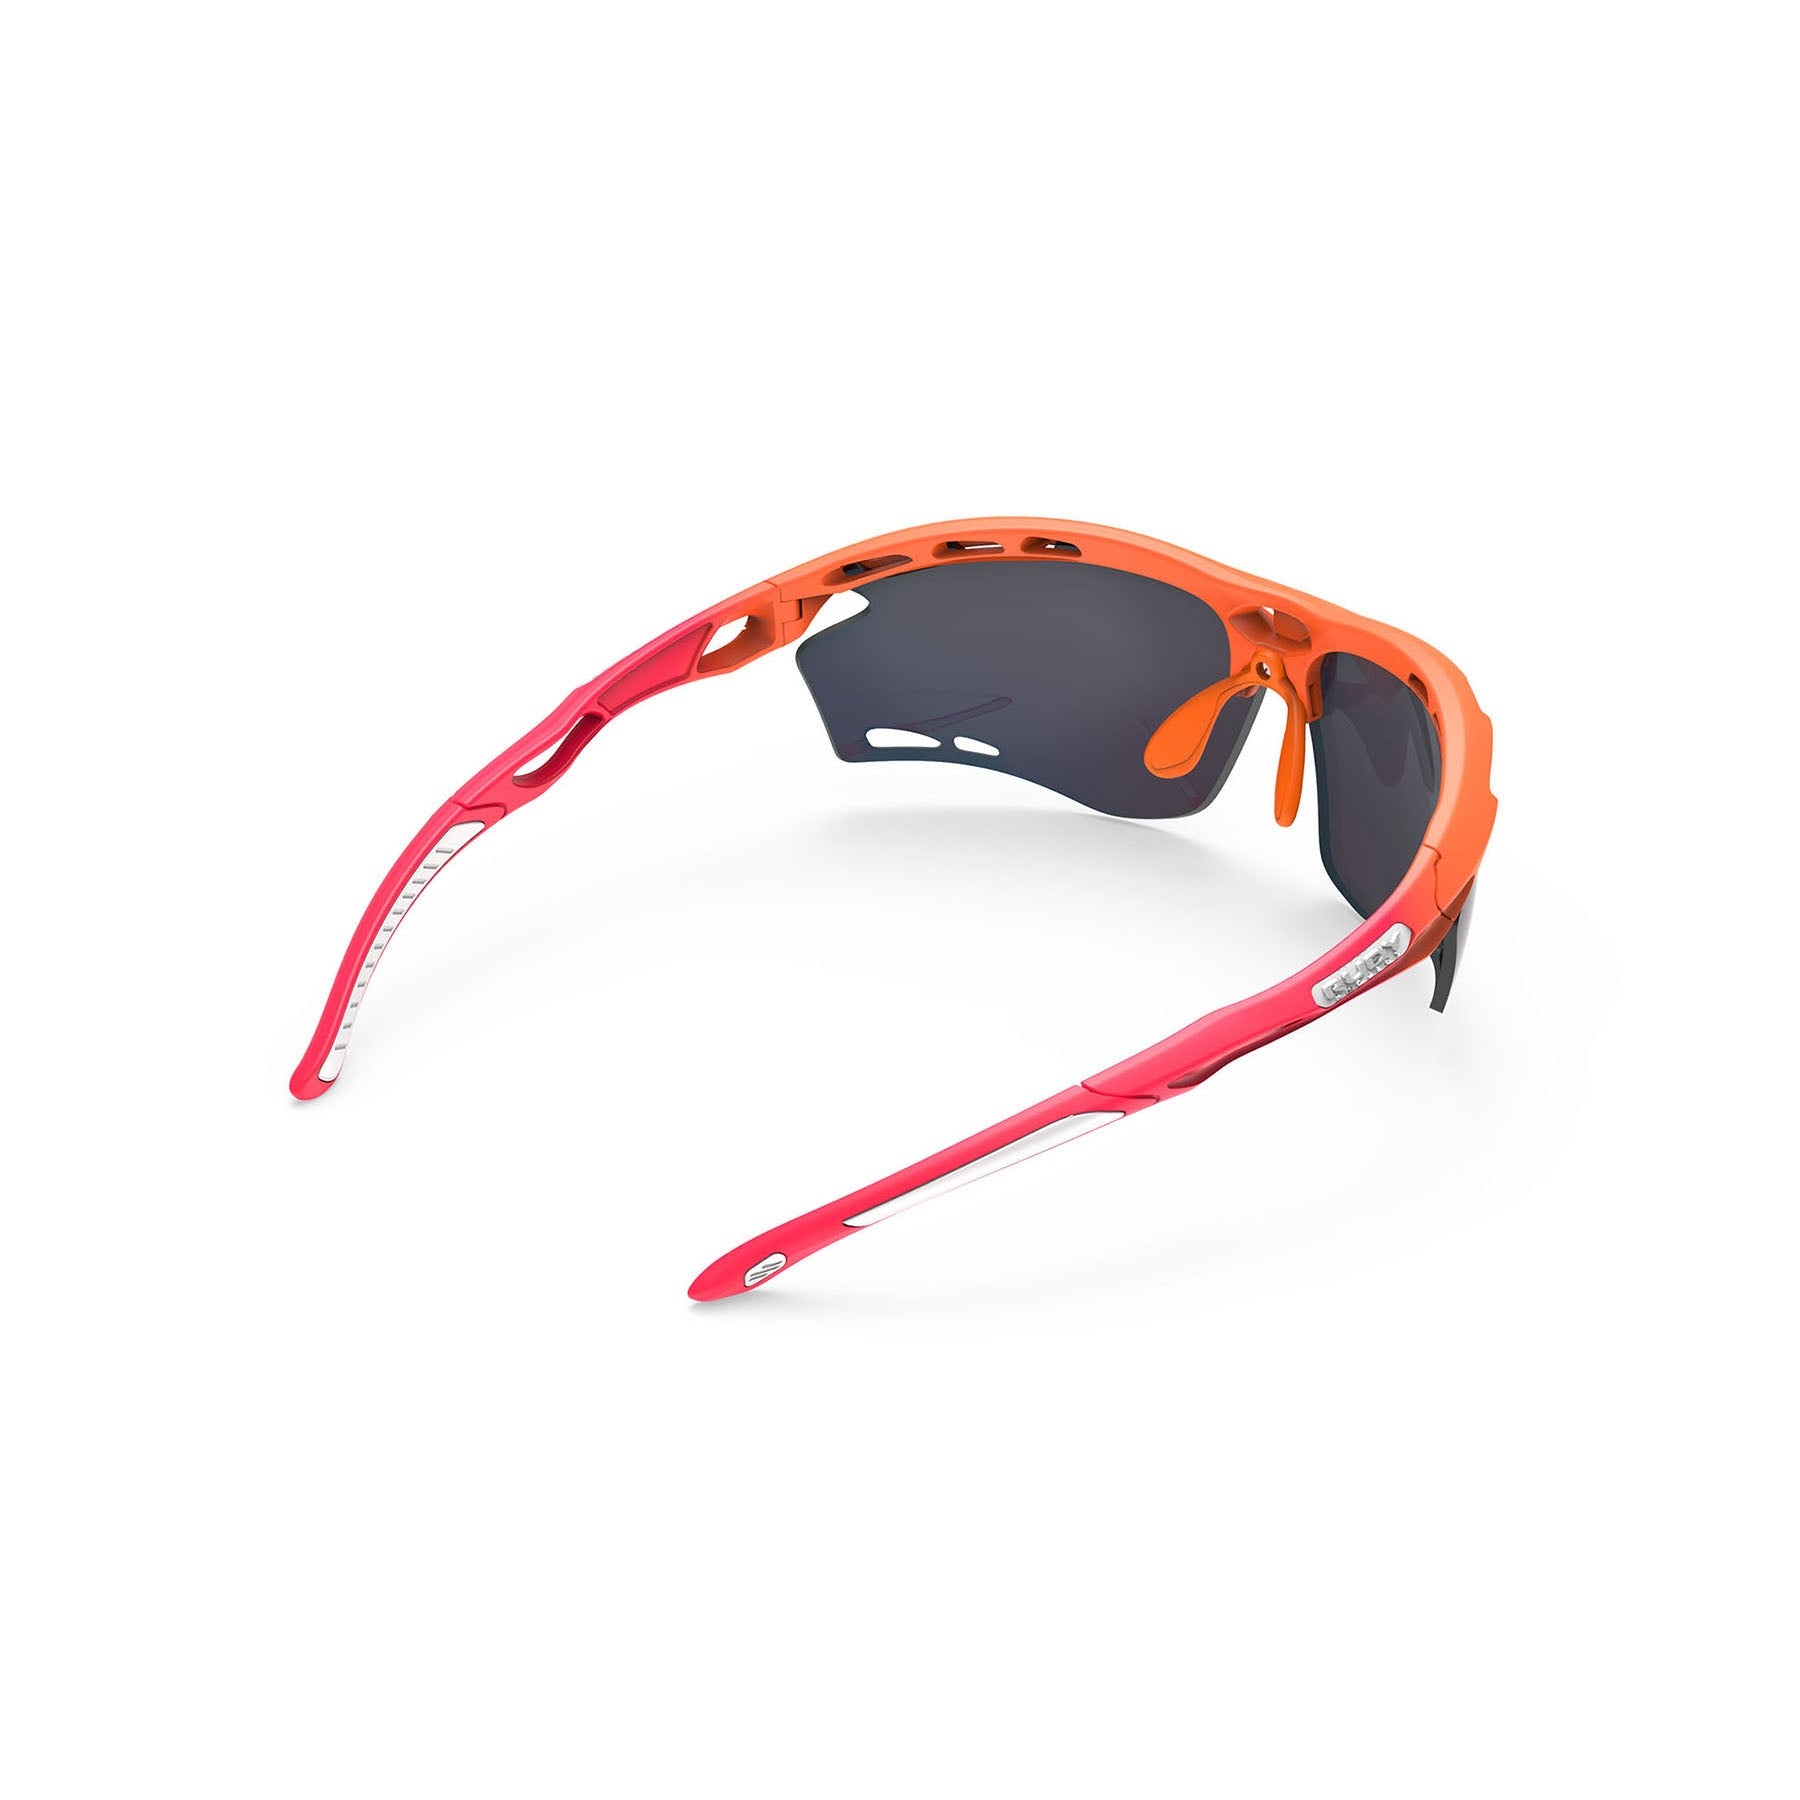 Rudy Project - Propulse - frame color: Pacific Blue Matte - lens color: ImpactX-2 Photochromic Clear to Red - Bumper Color:  - photo angle: Top Back Angle Variant Hover Image